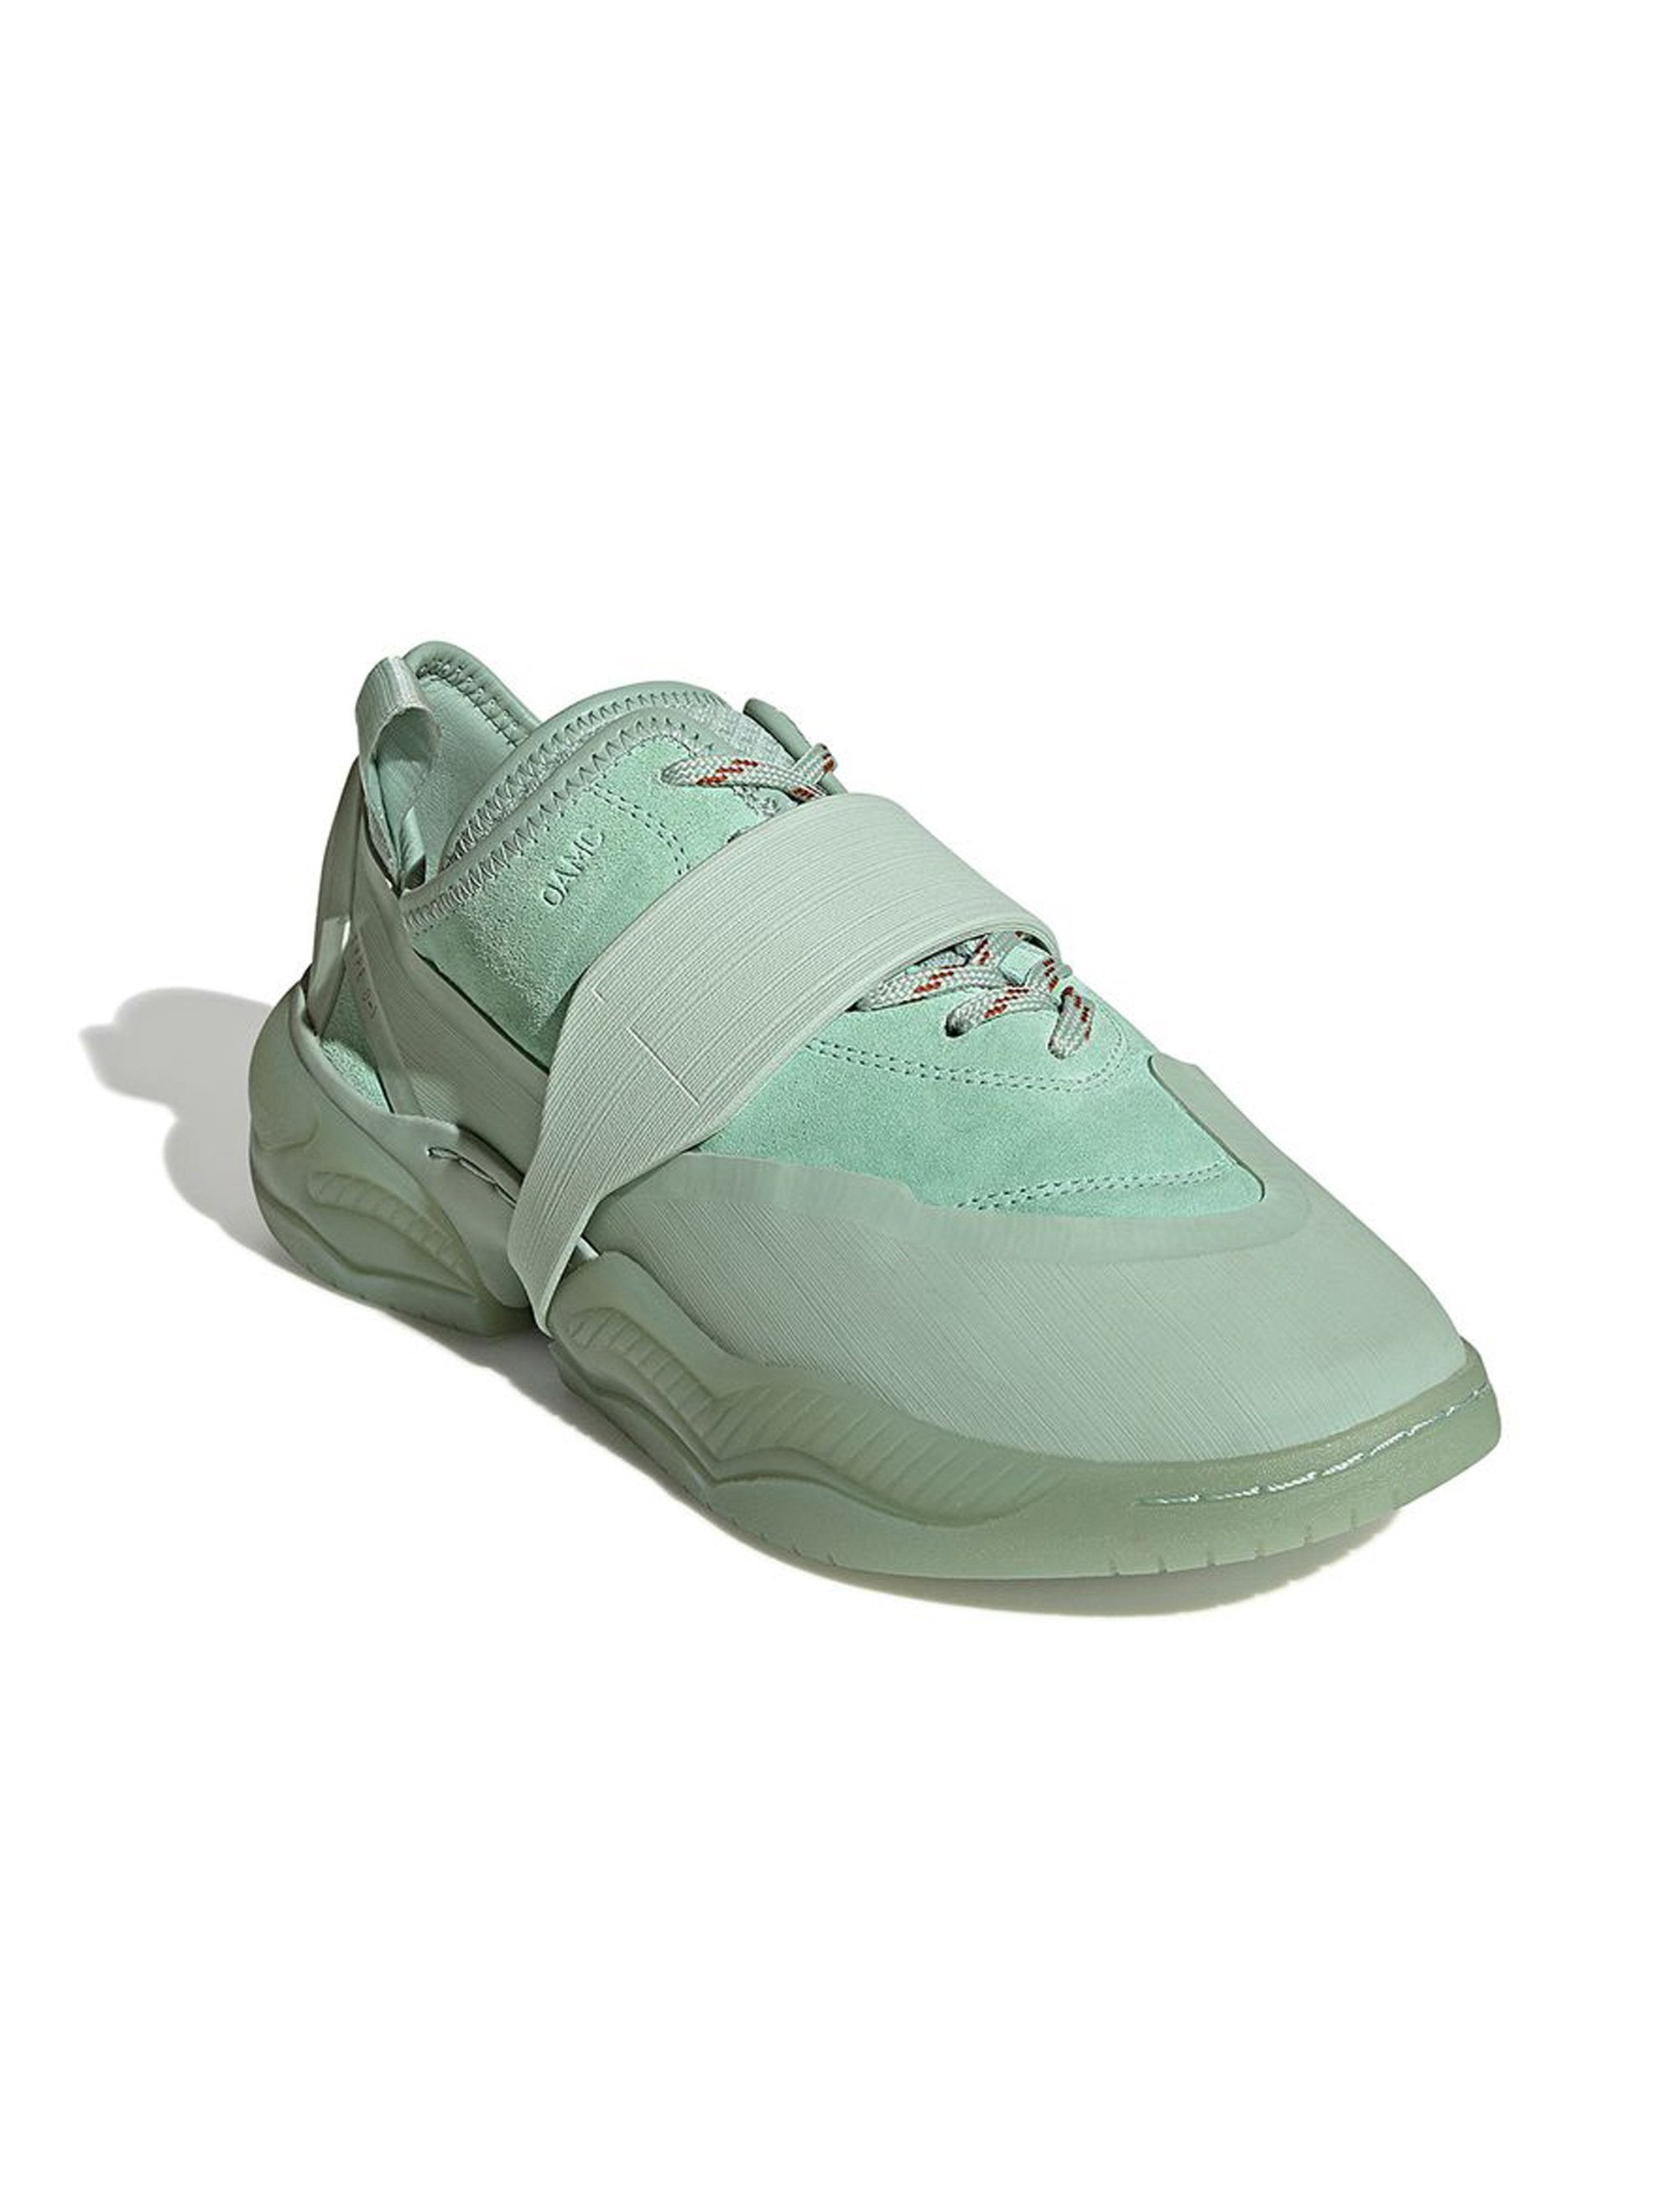 Medical Green OAMC x Adidas TYPE O-1S 2